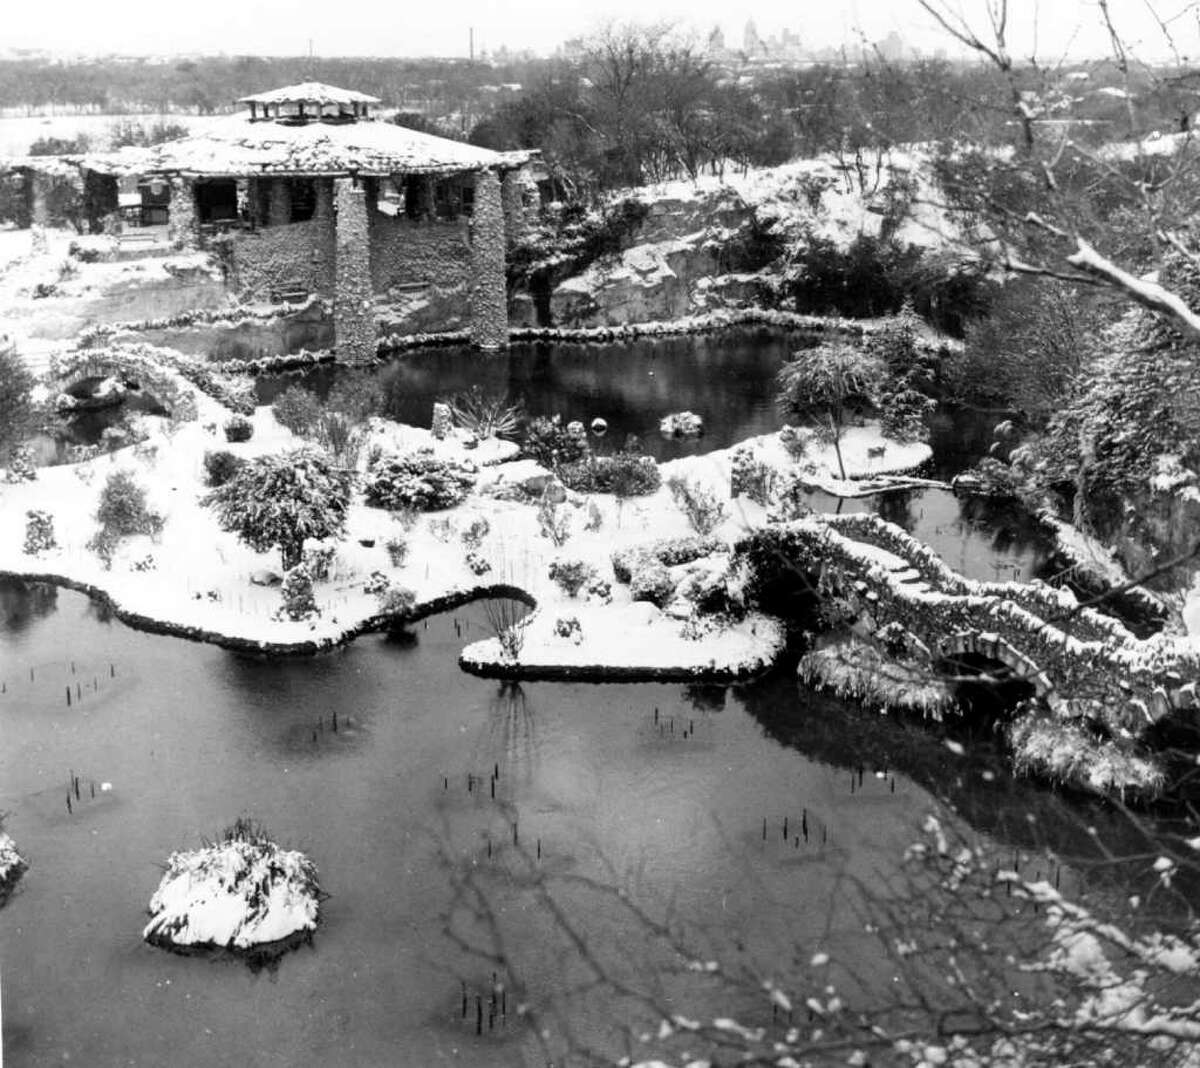 Attached is a scan of a photo I took of the Japanese Sunken Gardens when we had snow here in San Antonio. It could have been 1939, 1940 or 1941. I took many photos, and a friend, Morris Bowles, and I were fooling around on the Brackenridge (Park) Golf Course, when a newspaper photographer came by and took our picture. Morris is no longer with us, so I can't ask him about the snow.